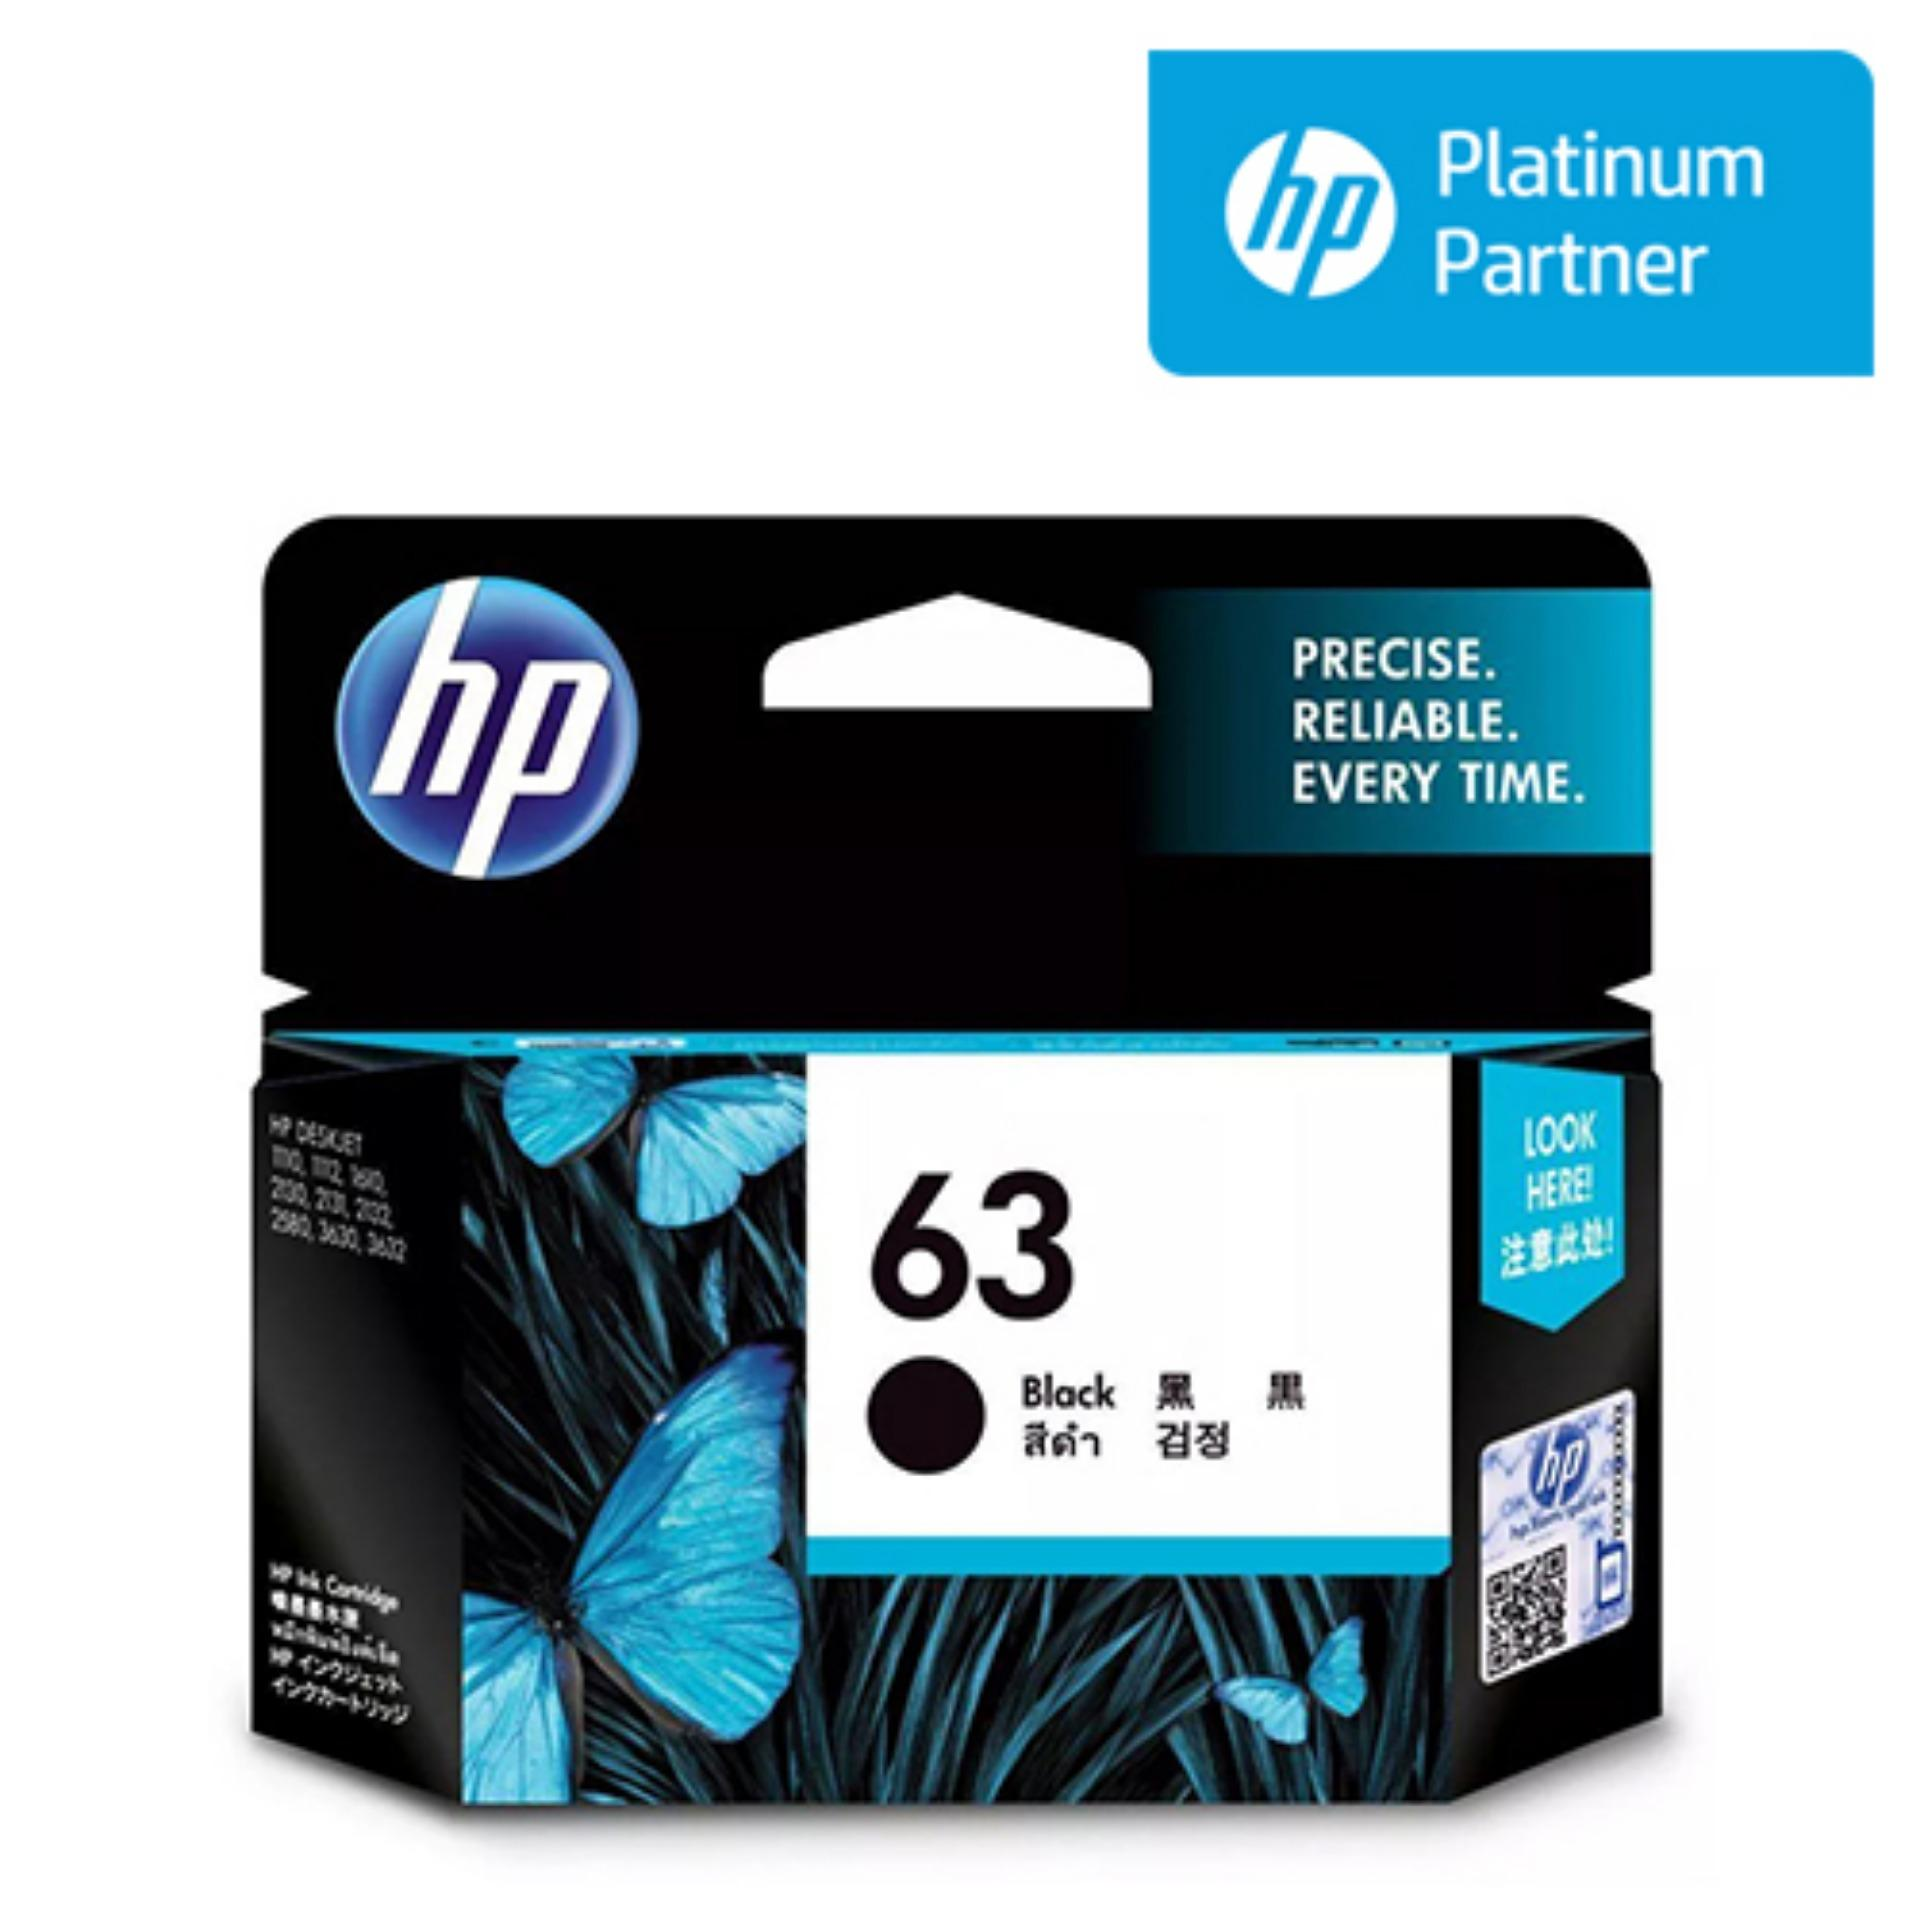 Printer Ink For Sale Cartridges Prices Brands Specs In Tinta Canon Cl 811 Original 100 Hp 63 Black Cartridge F6u62aa